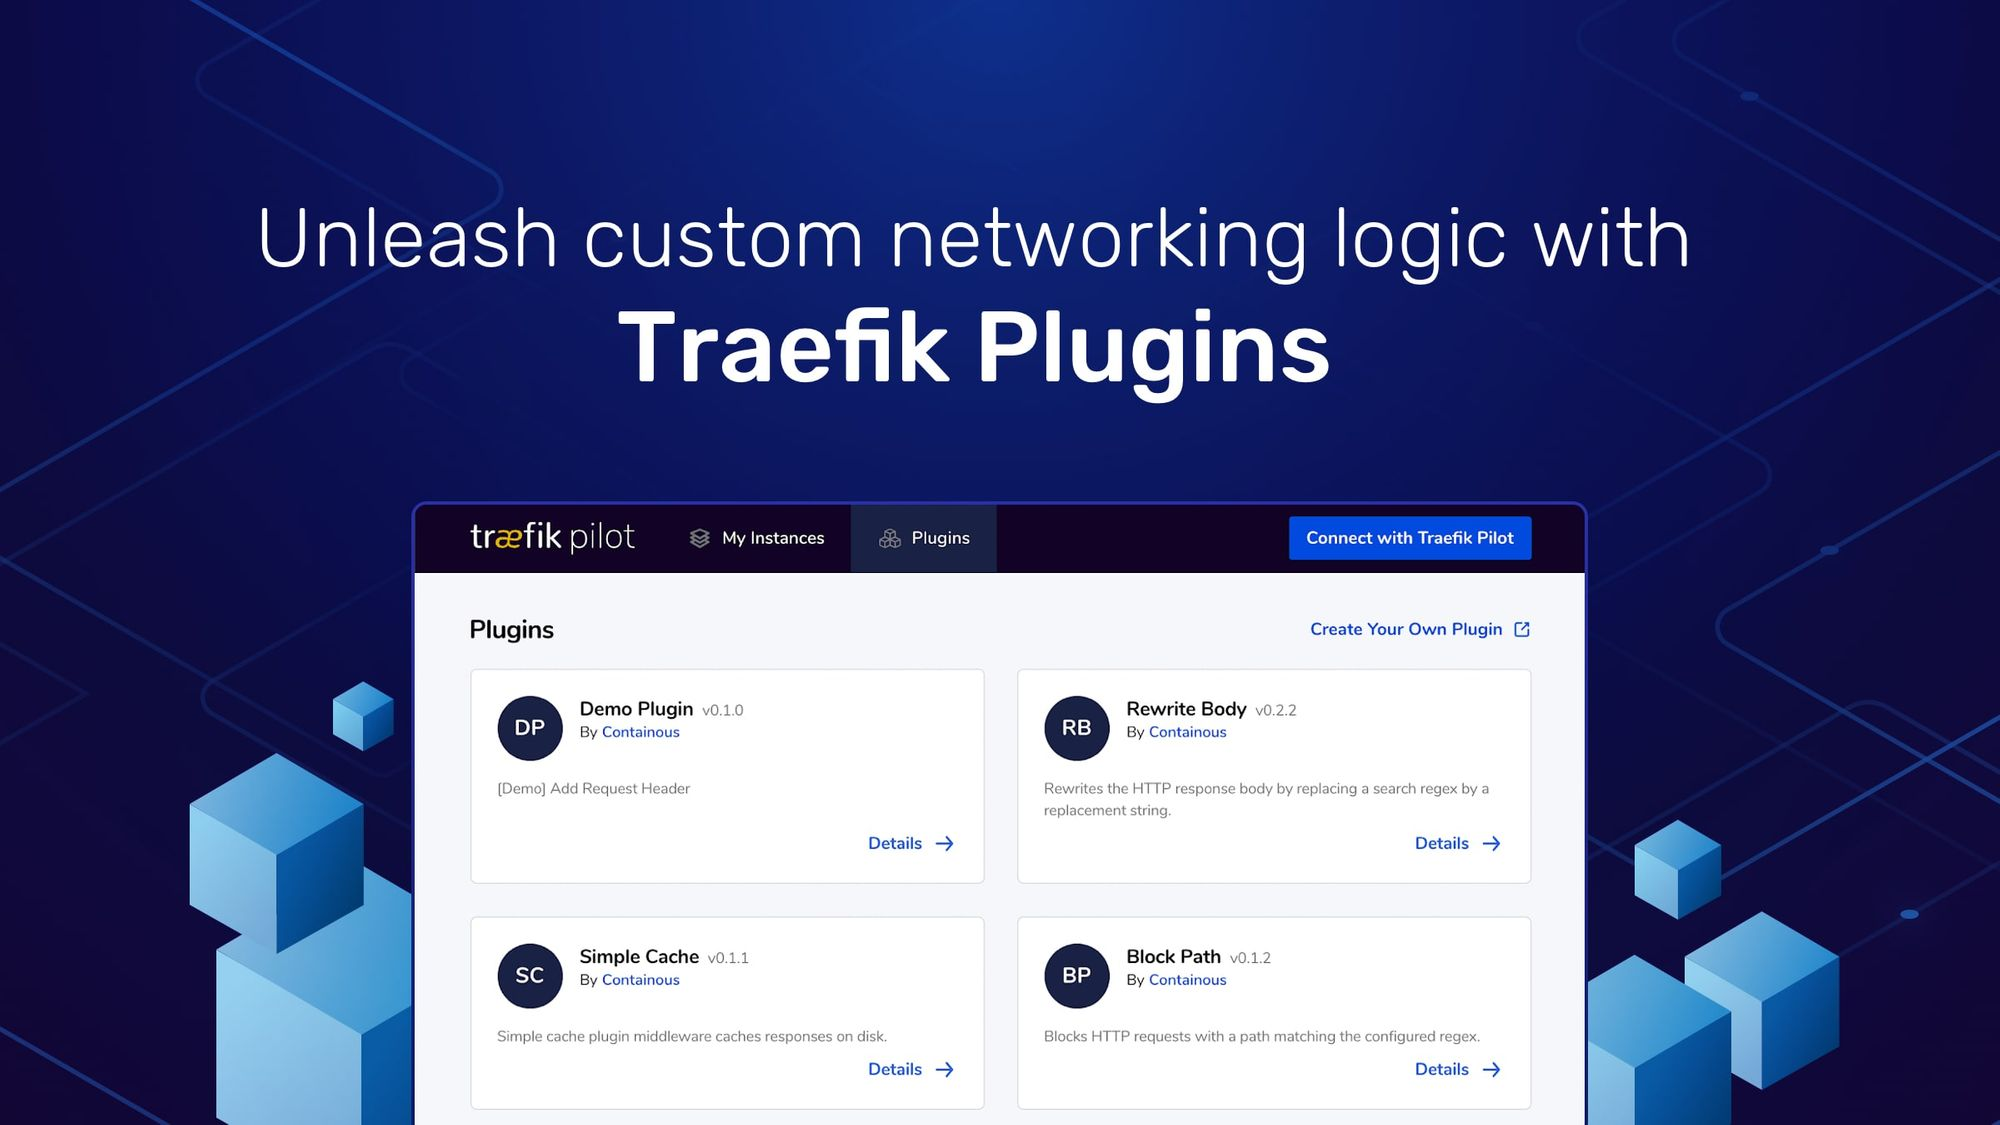 Unleash custom networking logic with Traefik Plugins